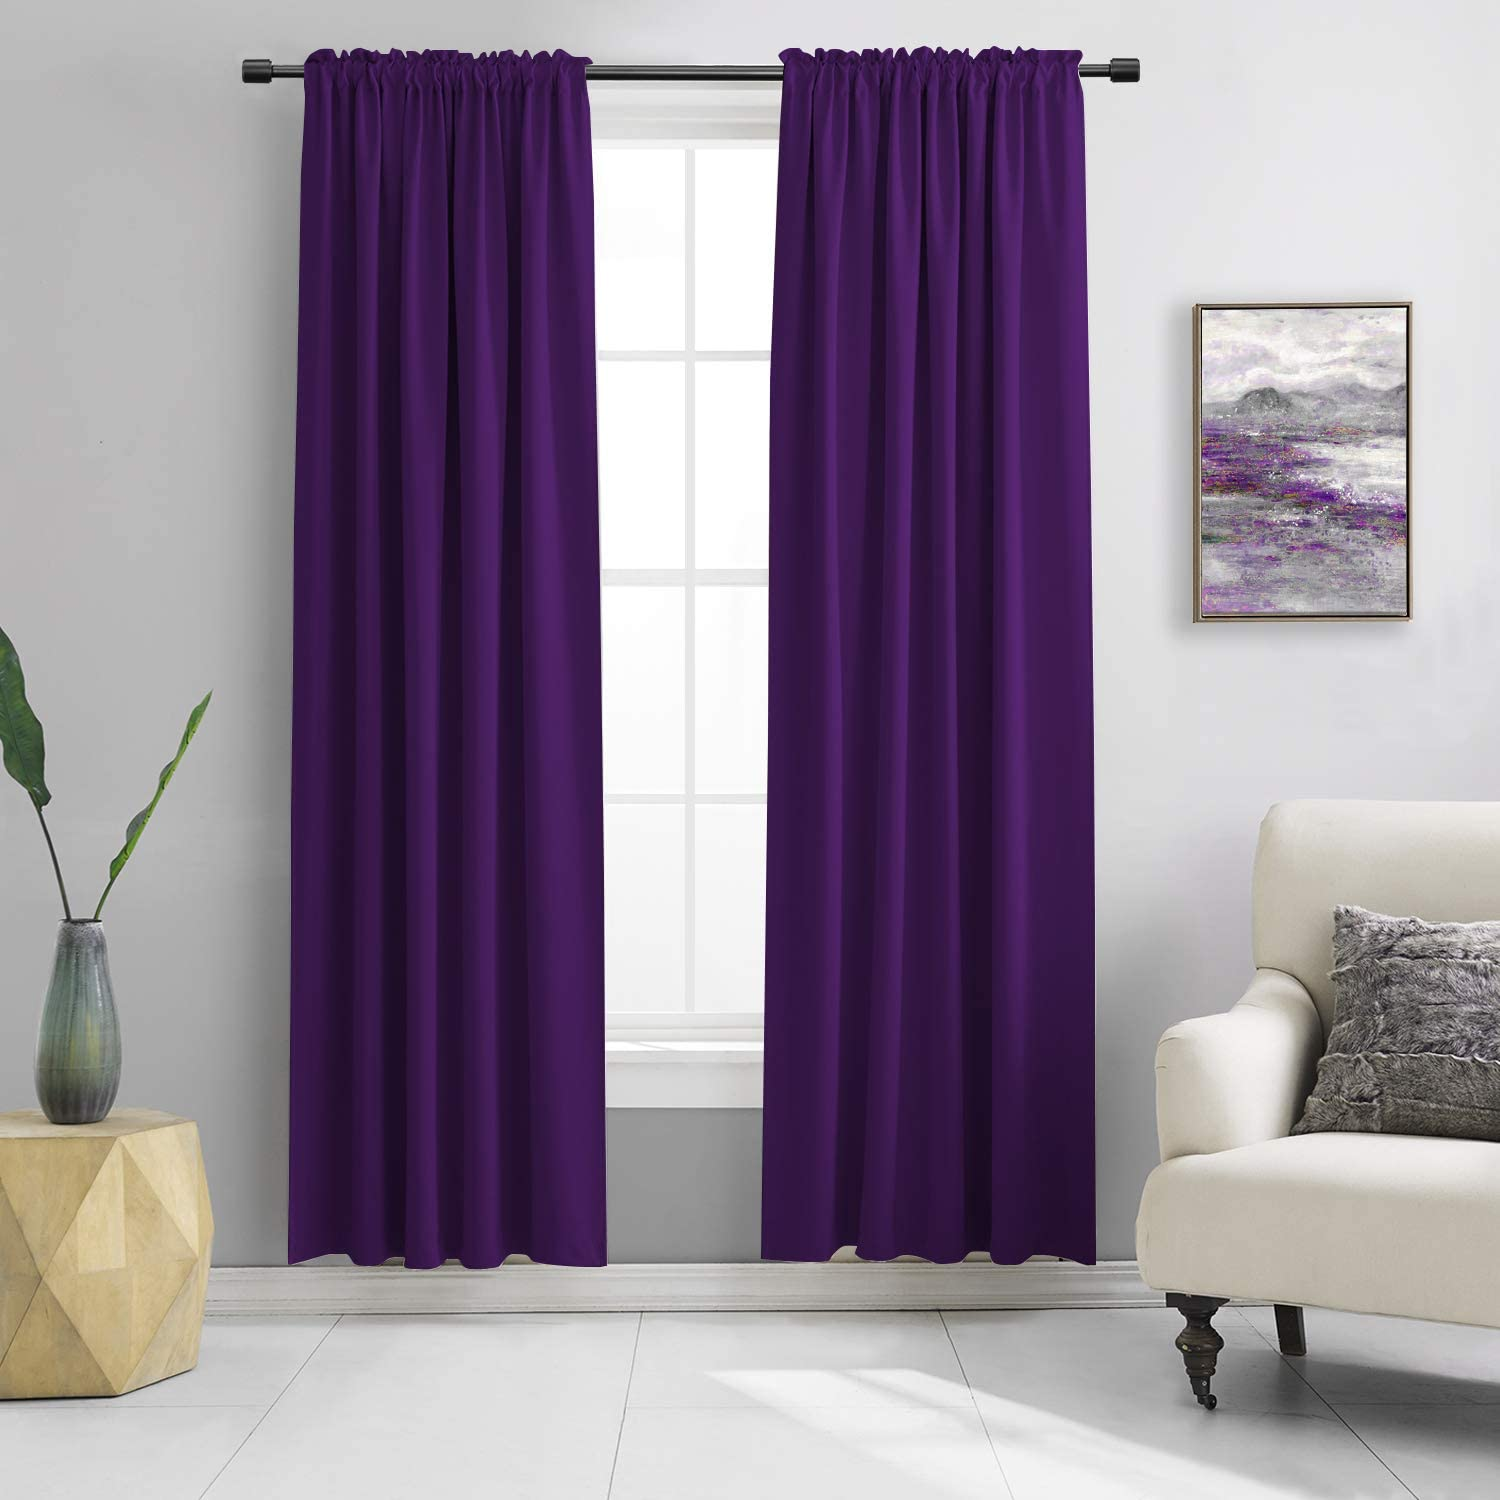 DONREN Room Darkening Window Curtain Panels for Bedroom - Rod Pocket Blackout Solid Curtains for Dining Room(Purple,52 W x 96 L 2 Panels)